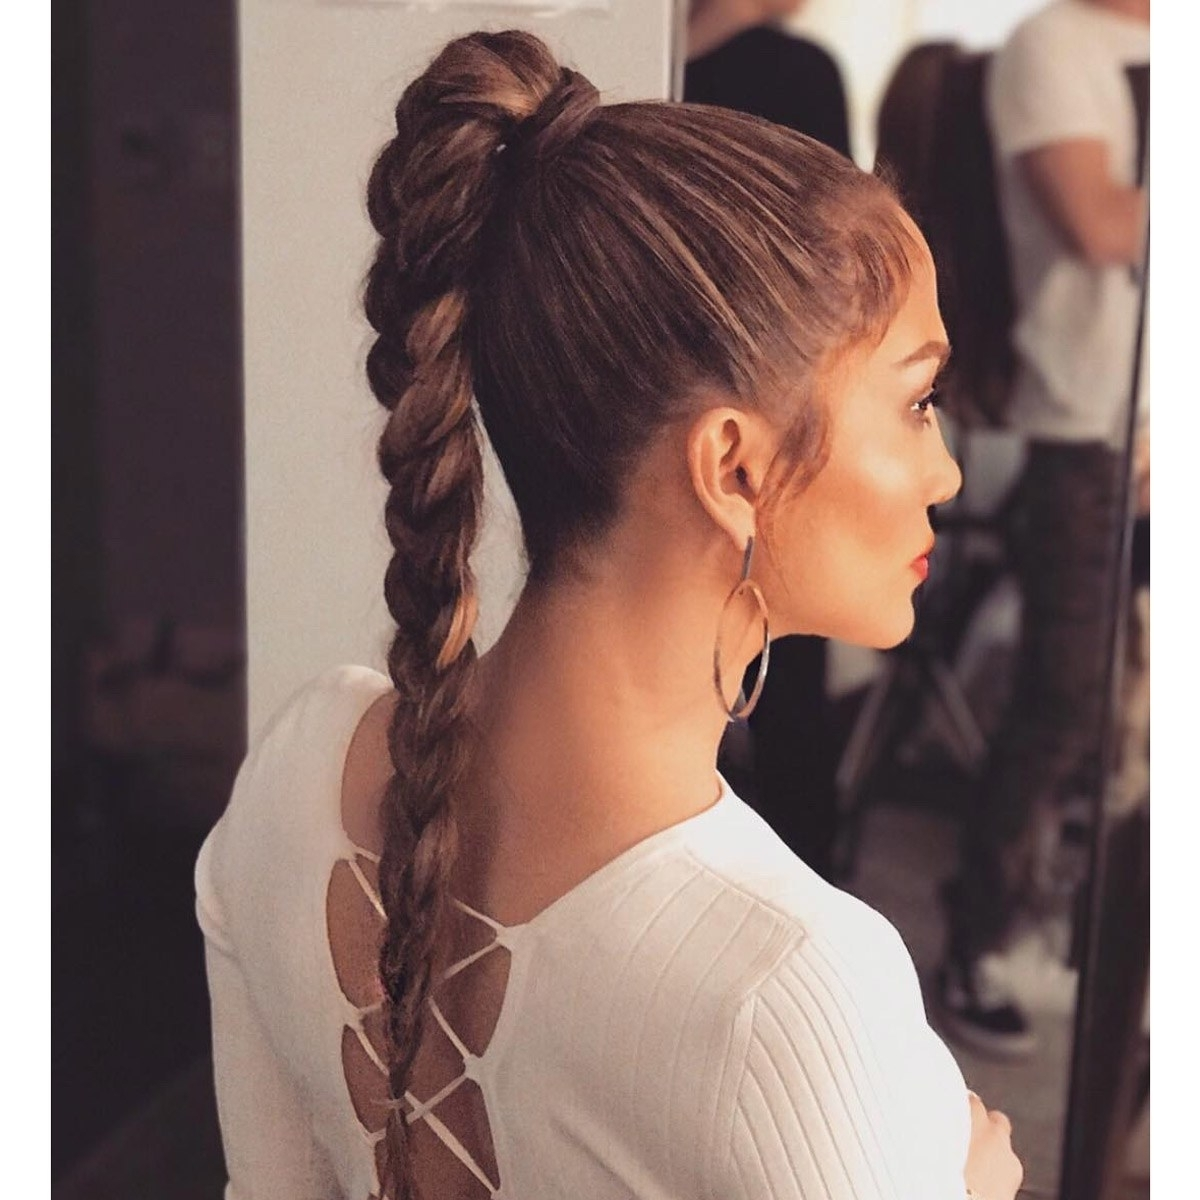 27 Ponytail Hairstyles For 2018: Best Ponytail Styles (View 18 of 20)